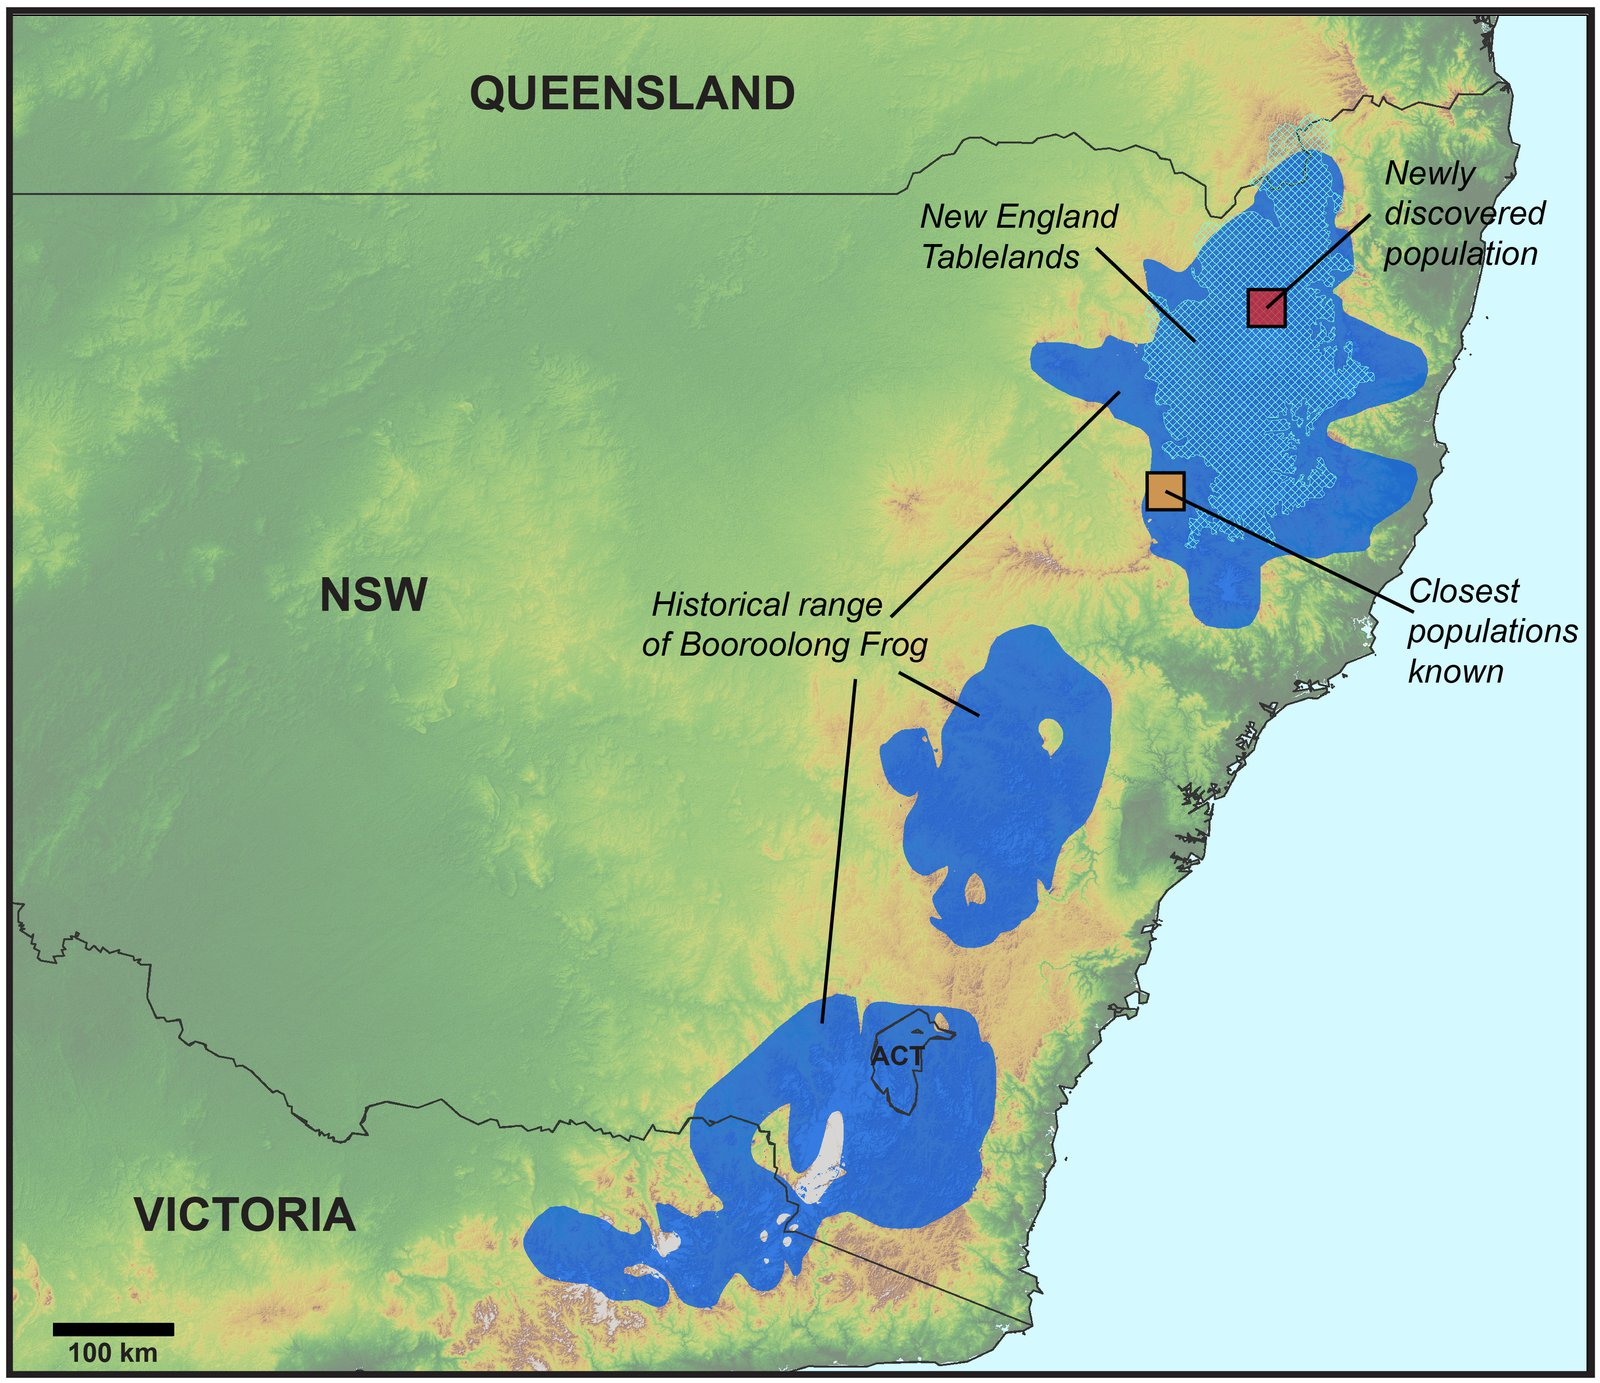 Map showing the newly discovered population of Booroolong Frogs (Litoria booroolongensis)